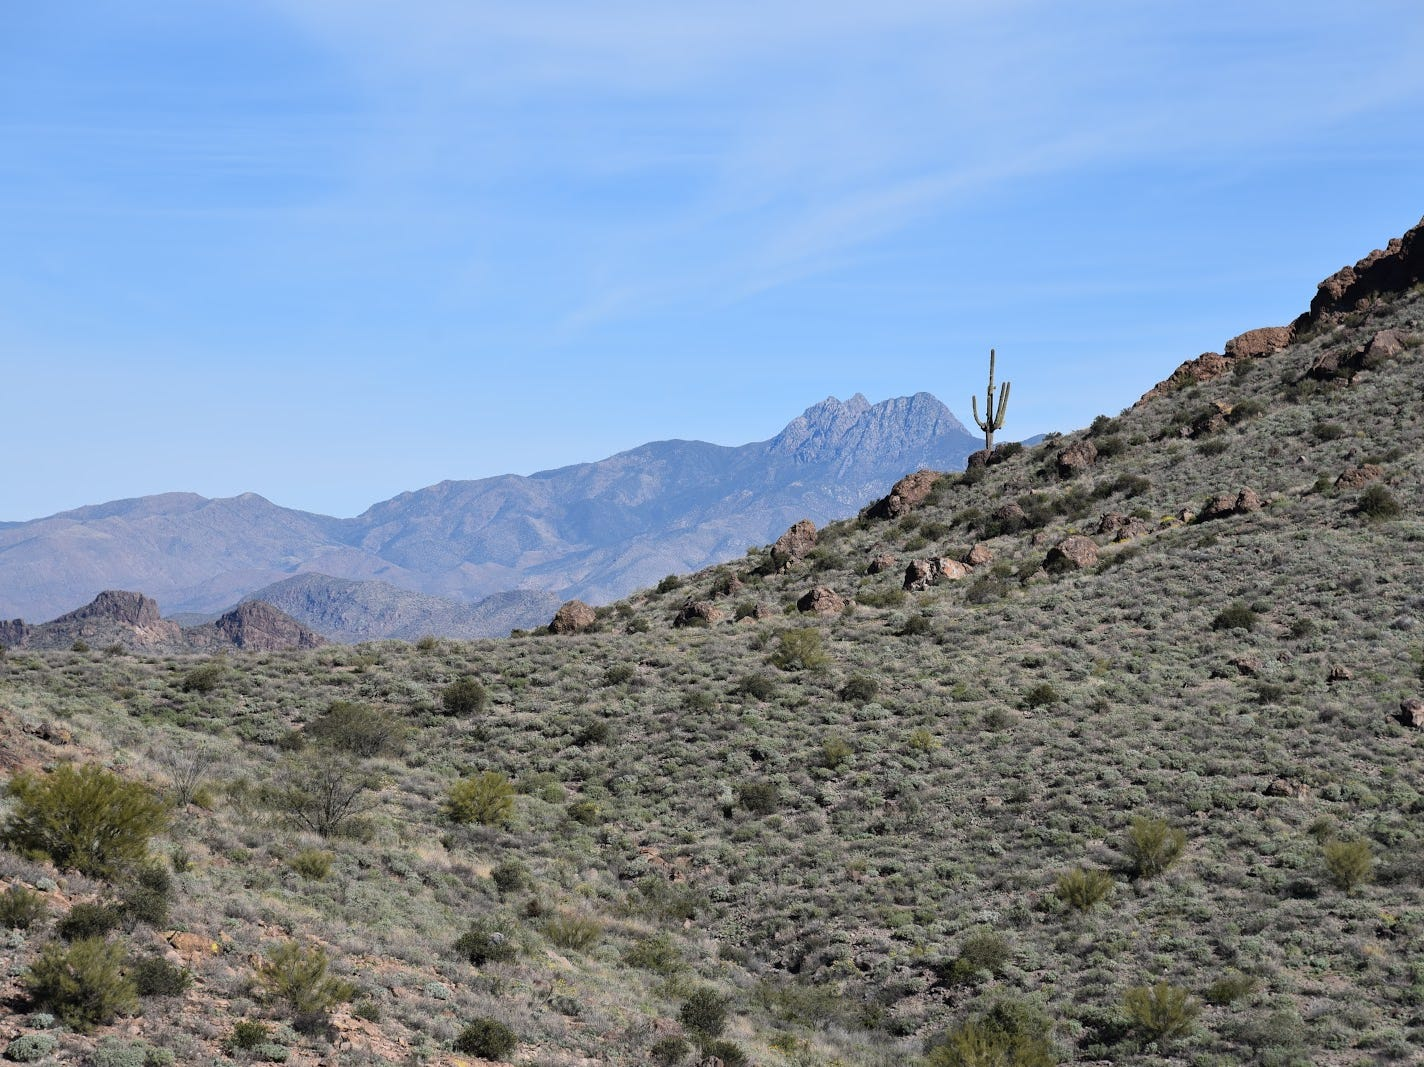 The Four Peaks are visible throughout most of the hike.